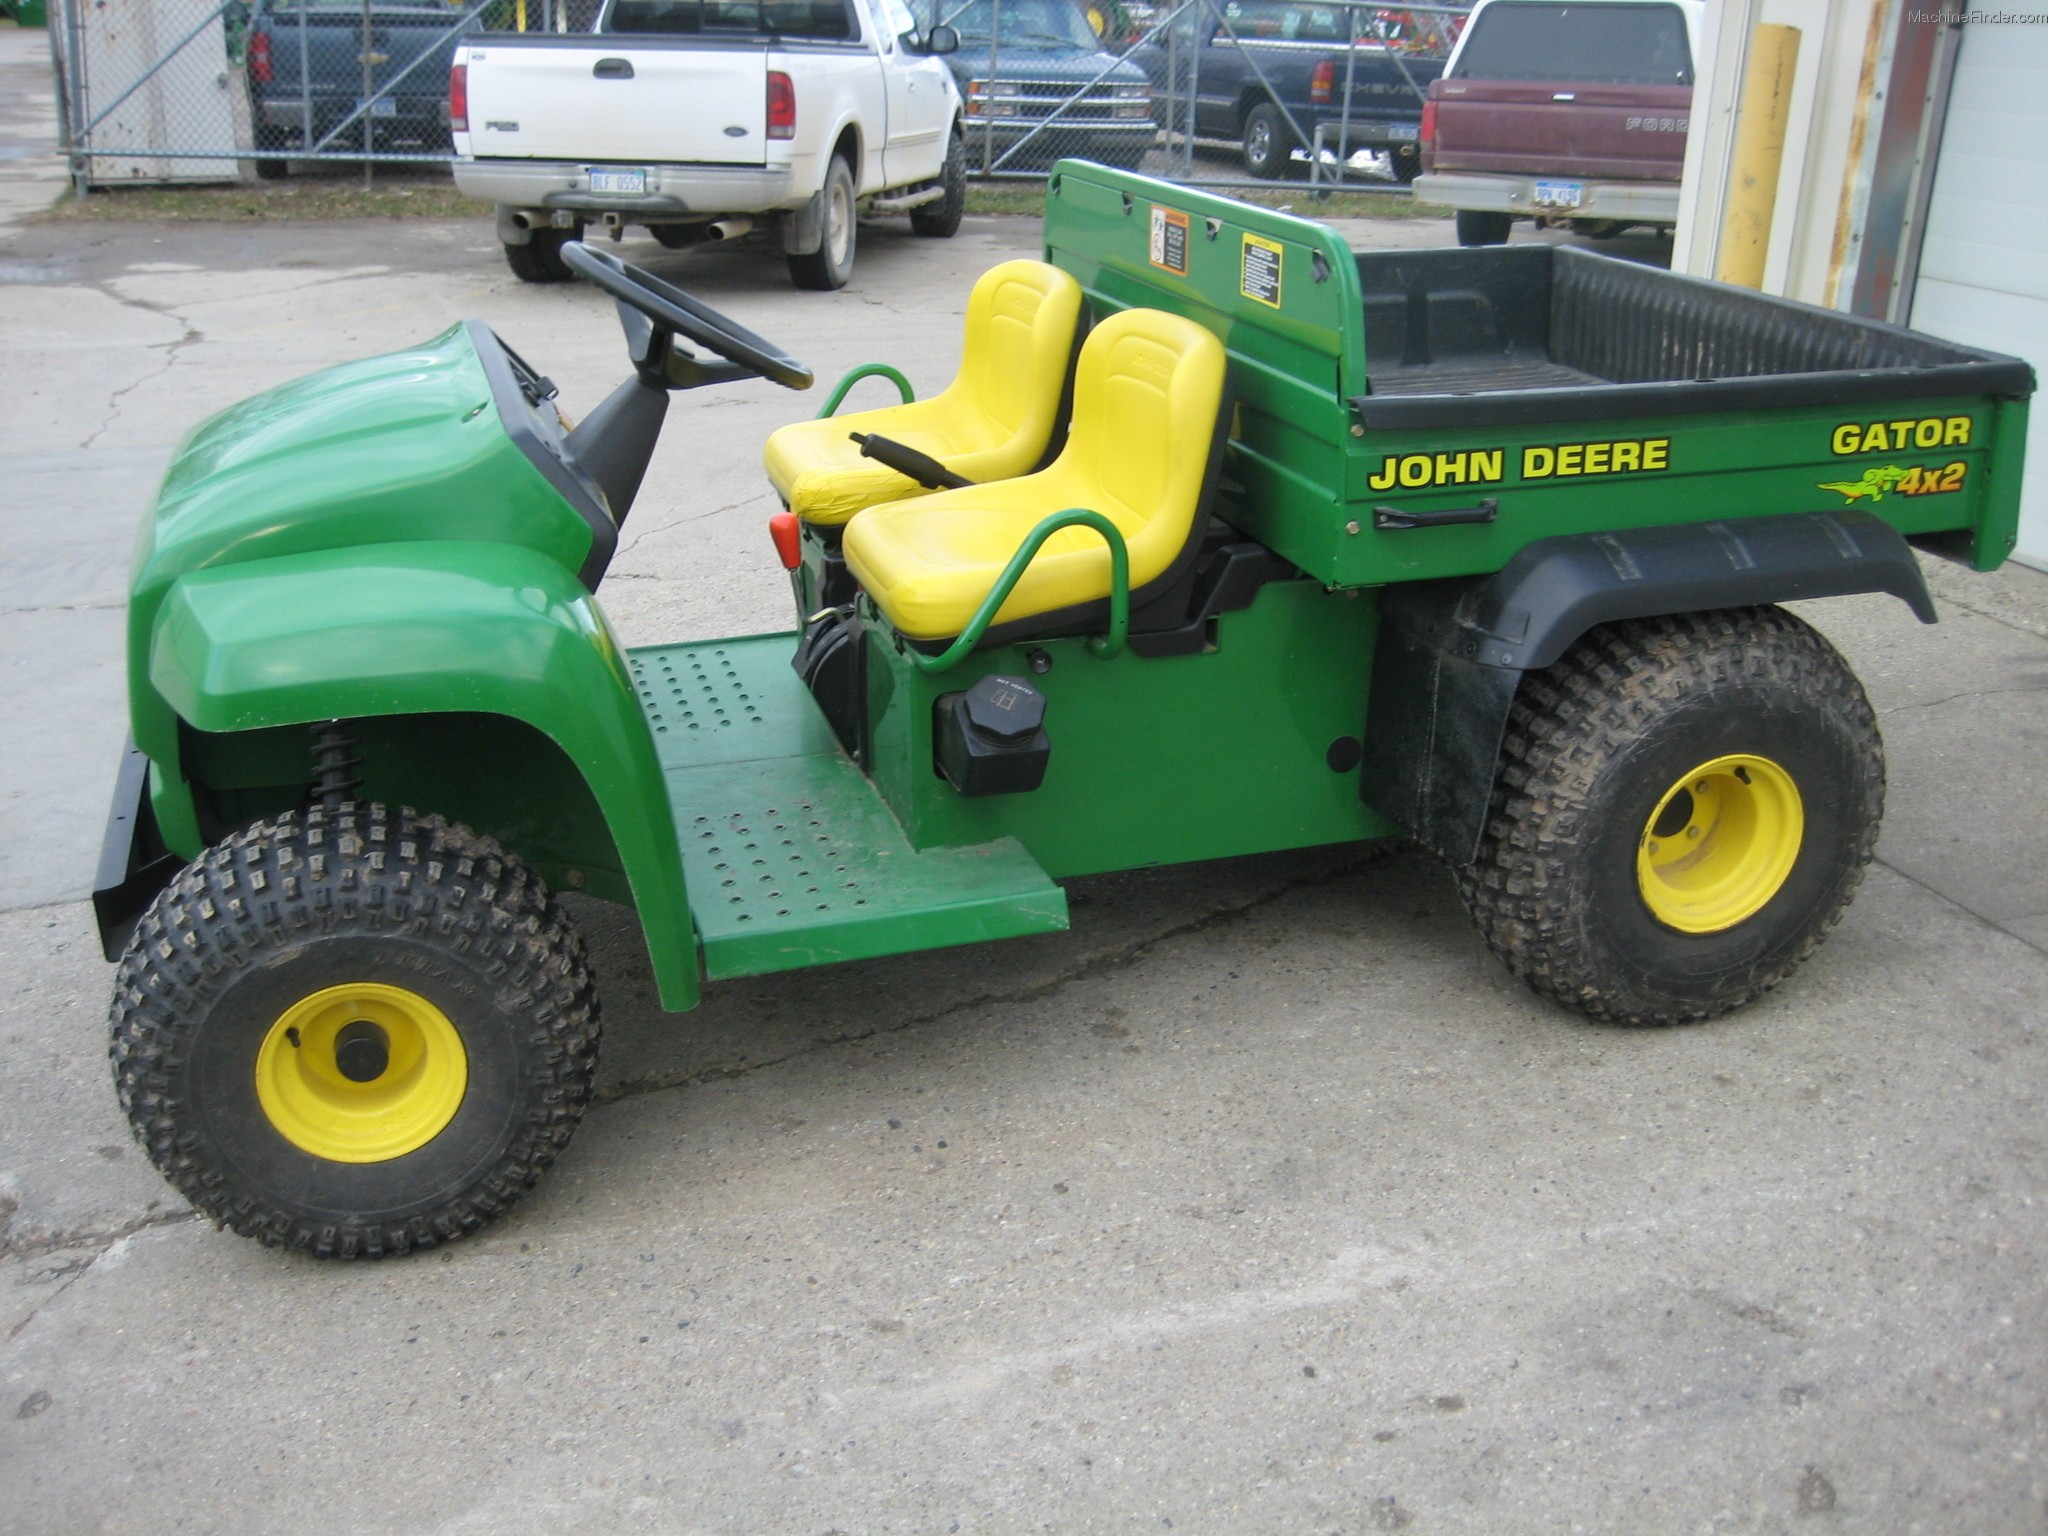 Jd Gator 4×2 Wiring Diagram John Deere Gator 4×2 Of Jd Gator 4×2 Wiring Diagram